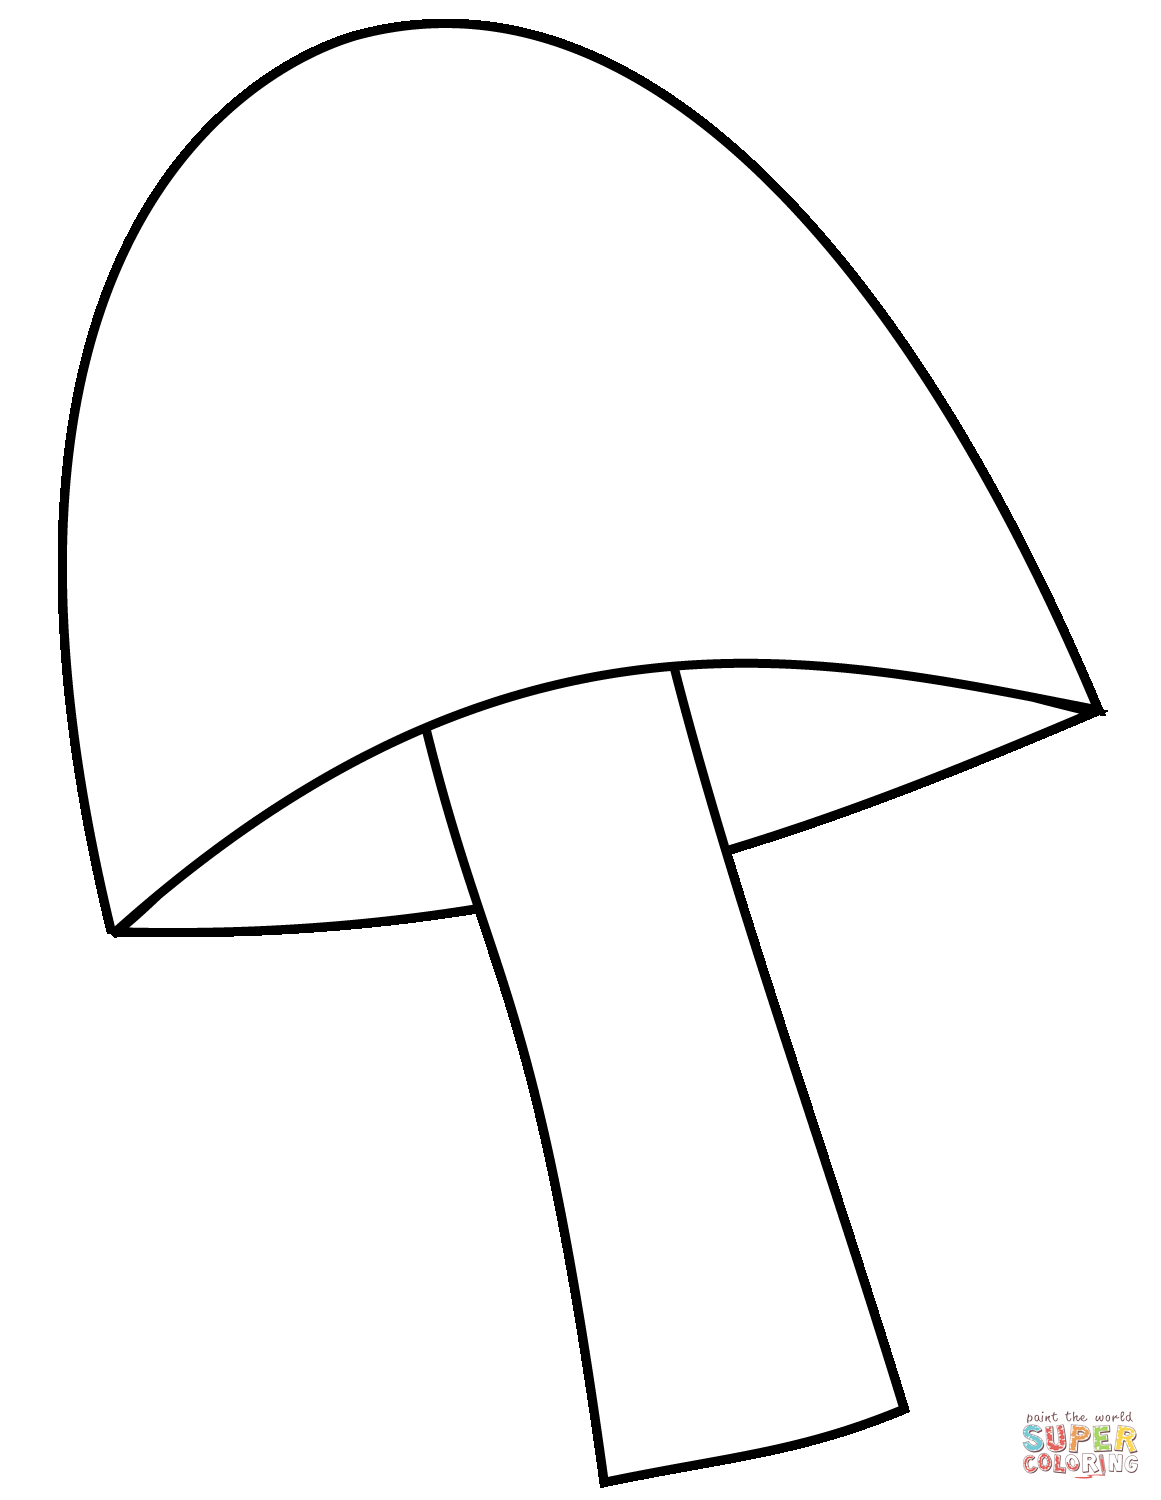 Mushroom Coloring Page Free Printable Coloring Pages